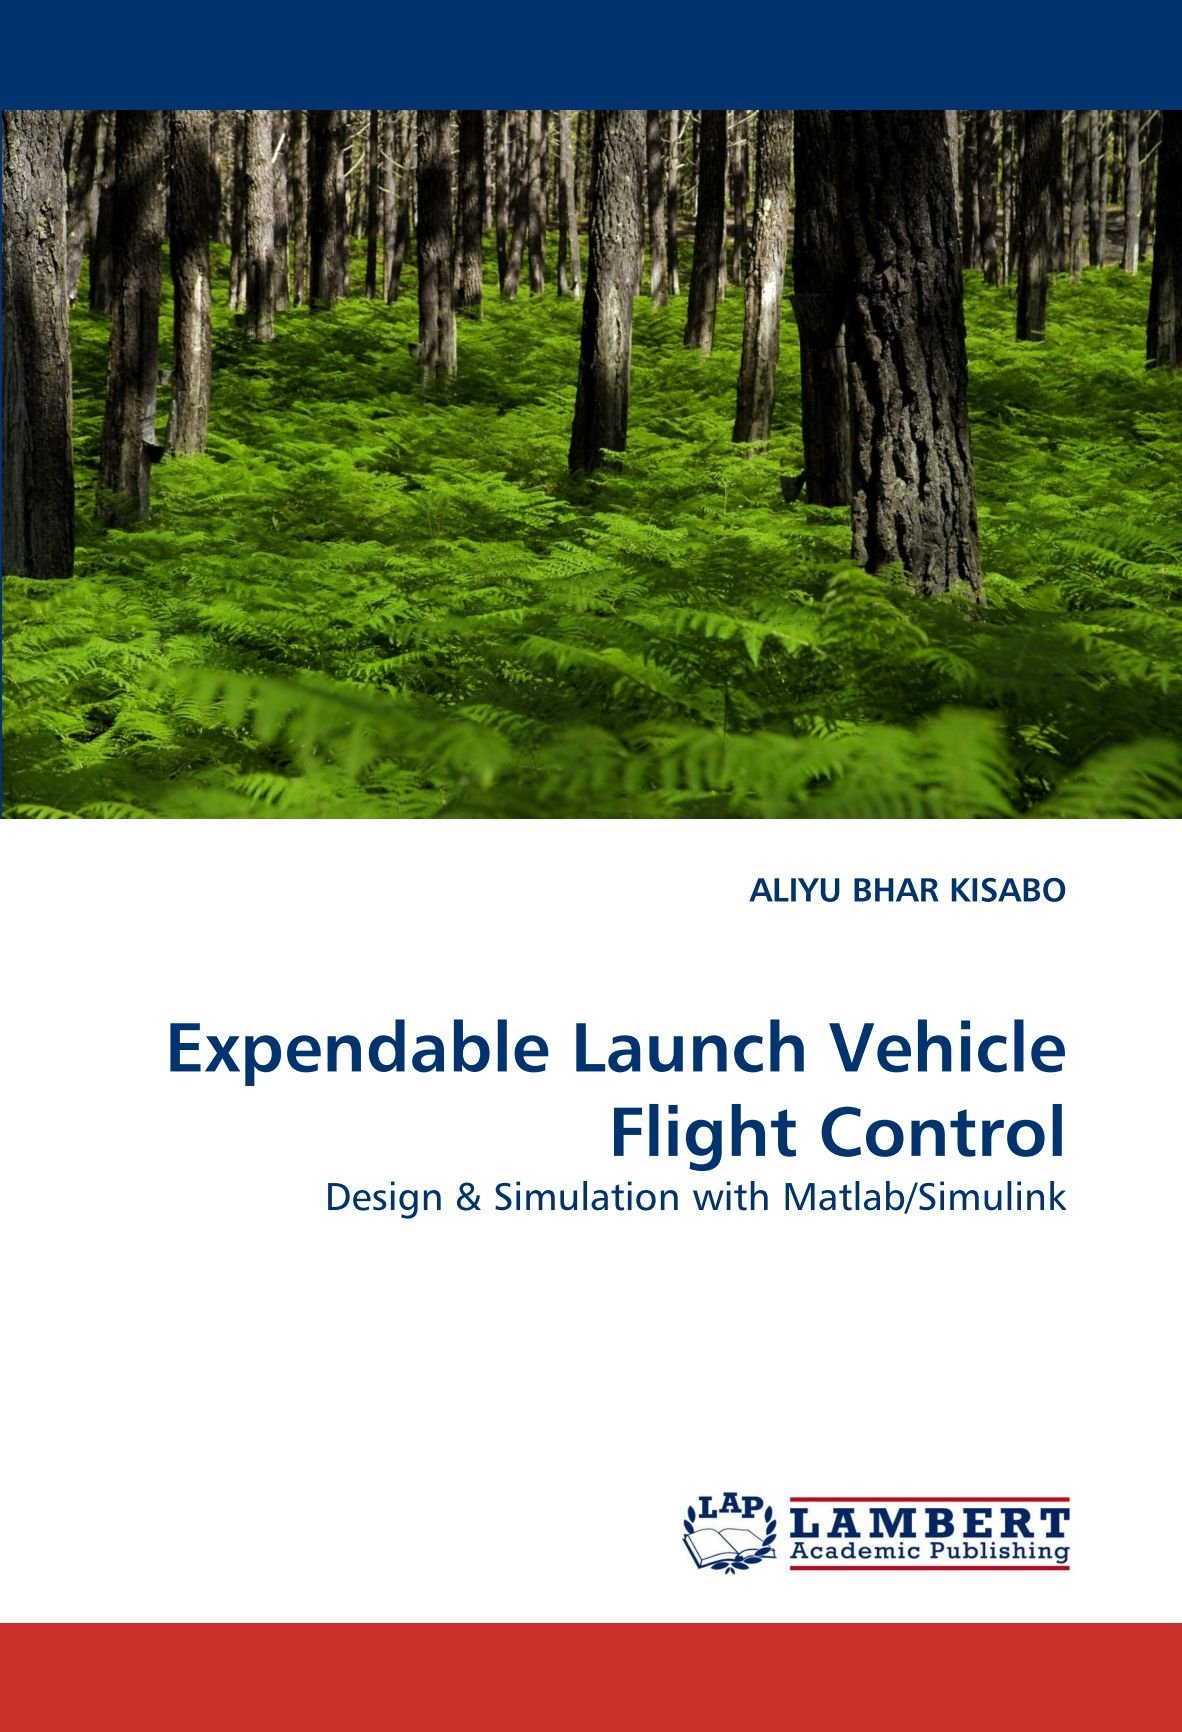 Expendable Launch Vehicle Flight Control: Design & Simulation with